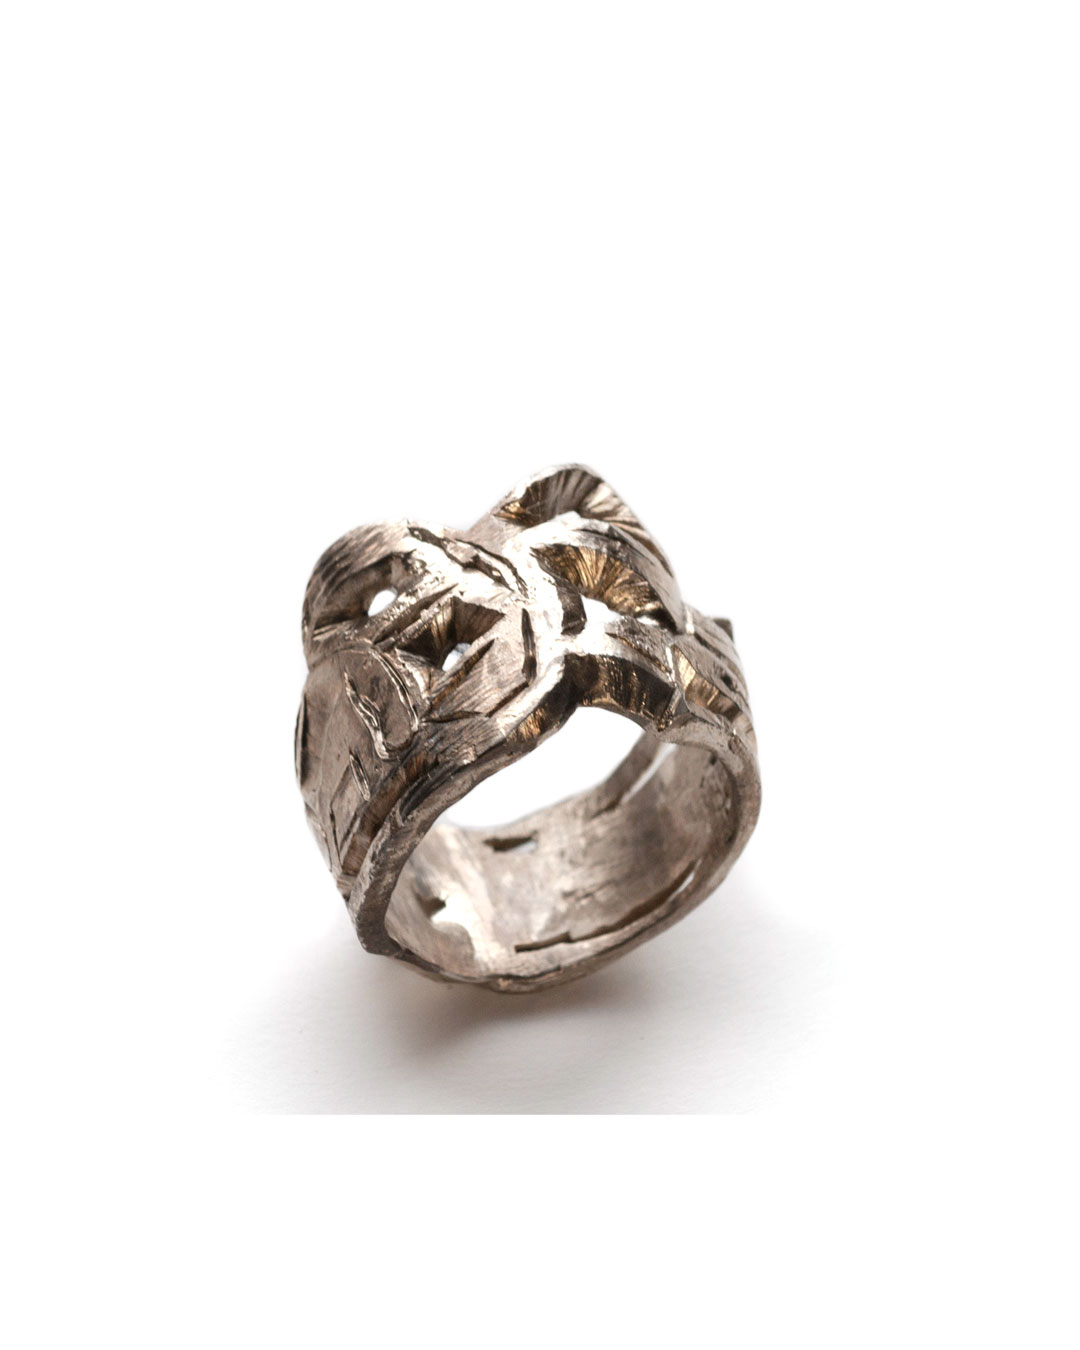 Rudolf Kocéa, untitled, 2007, ring; silver, 24 x 23 x 11 mm, €655